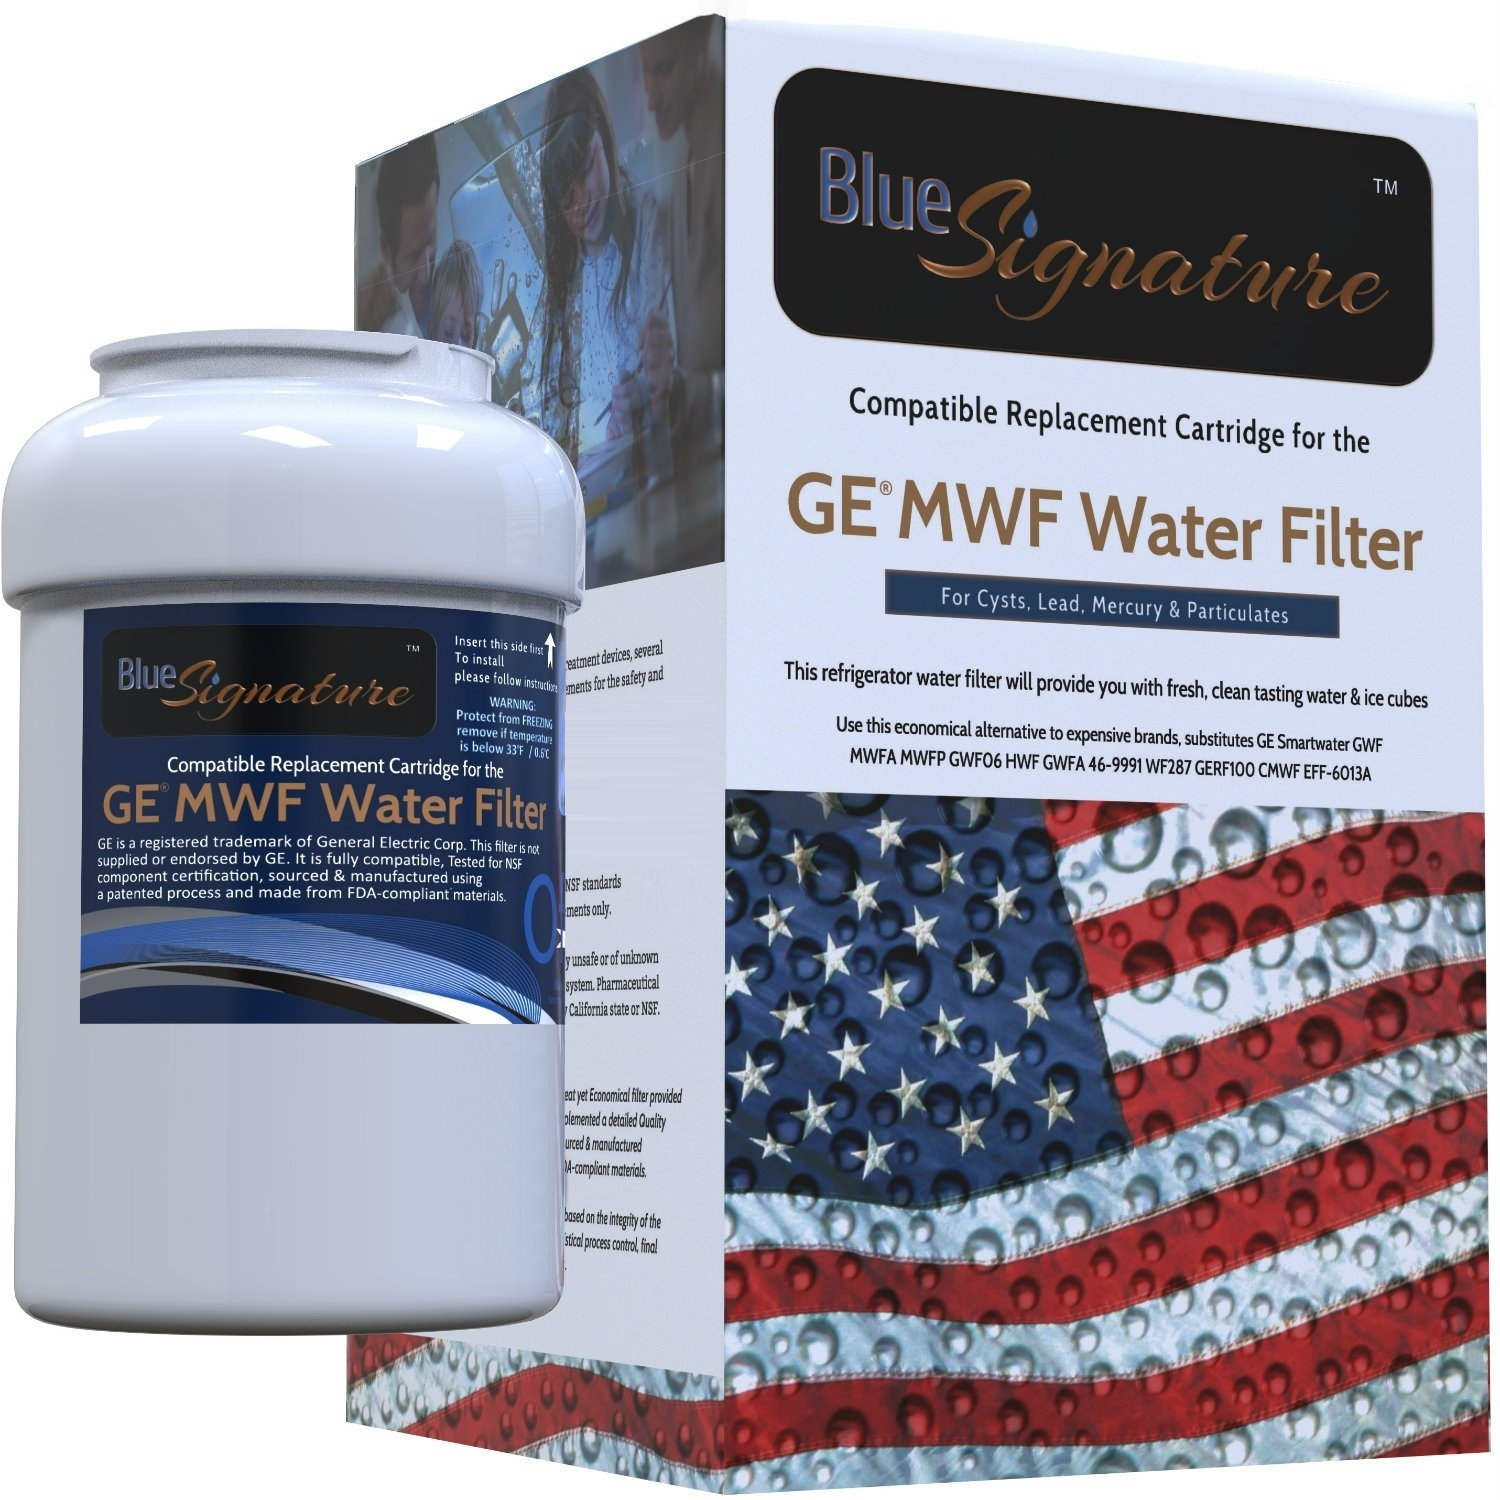 GE MWF SmartWater Water Filter Cartridge from Blue Signature (1)